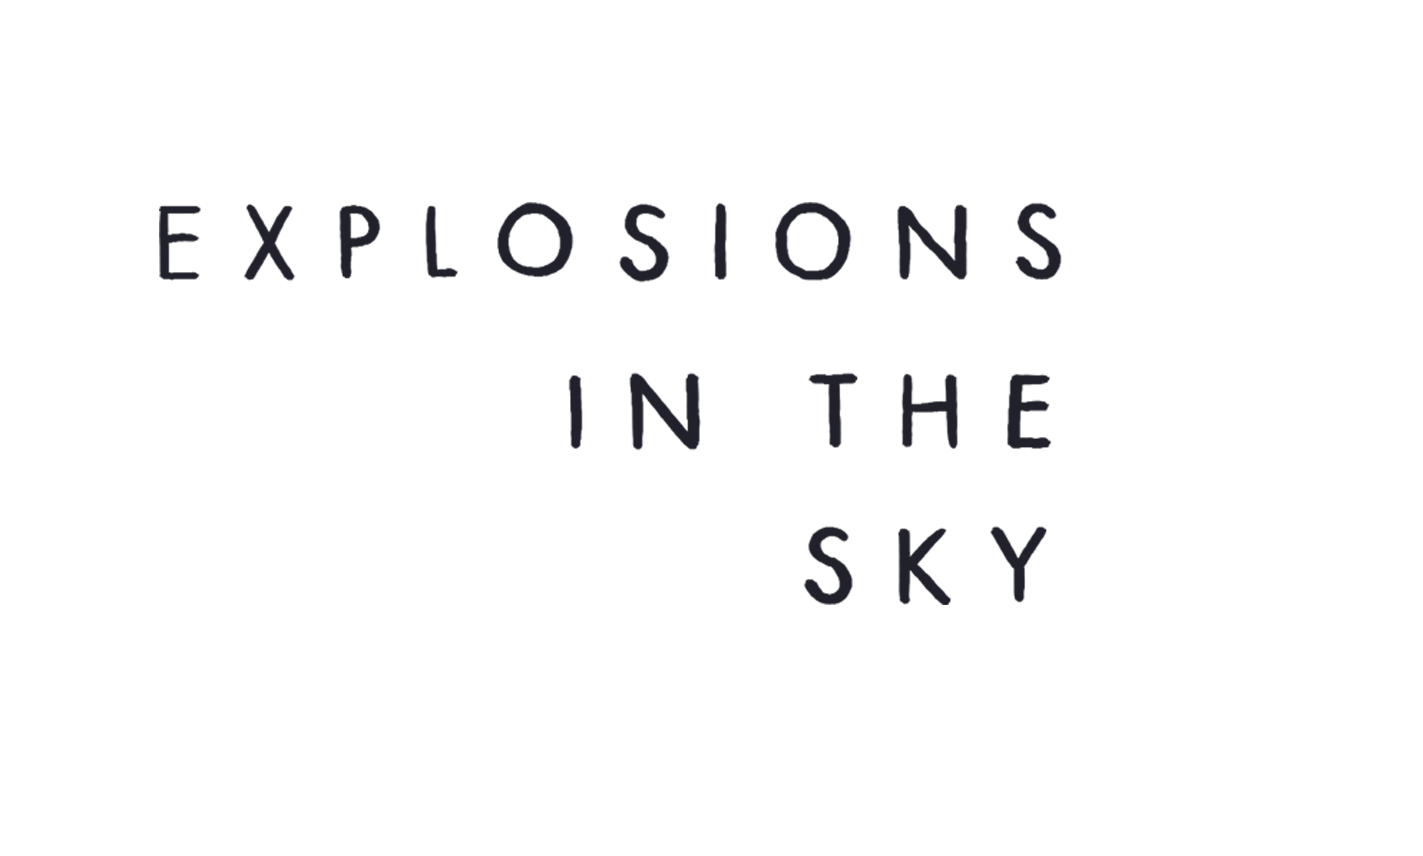 Explosions in the Sky Official Store logo